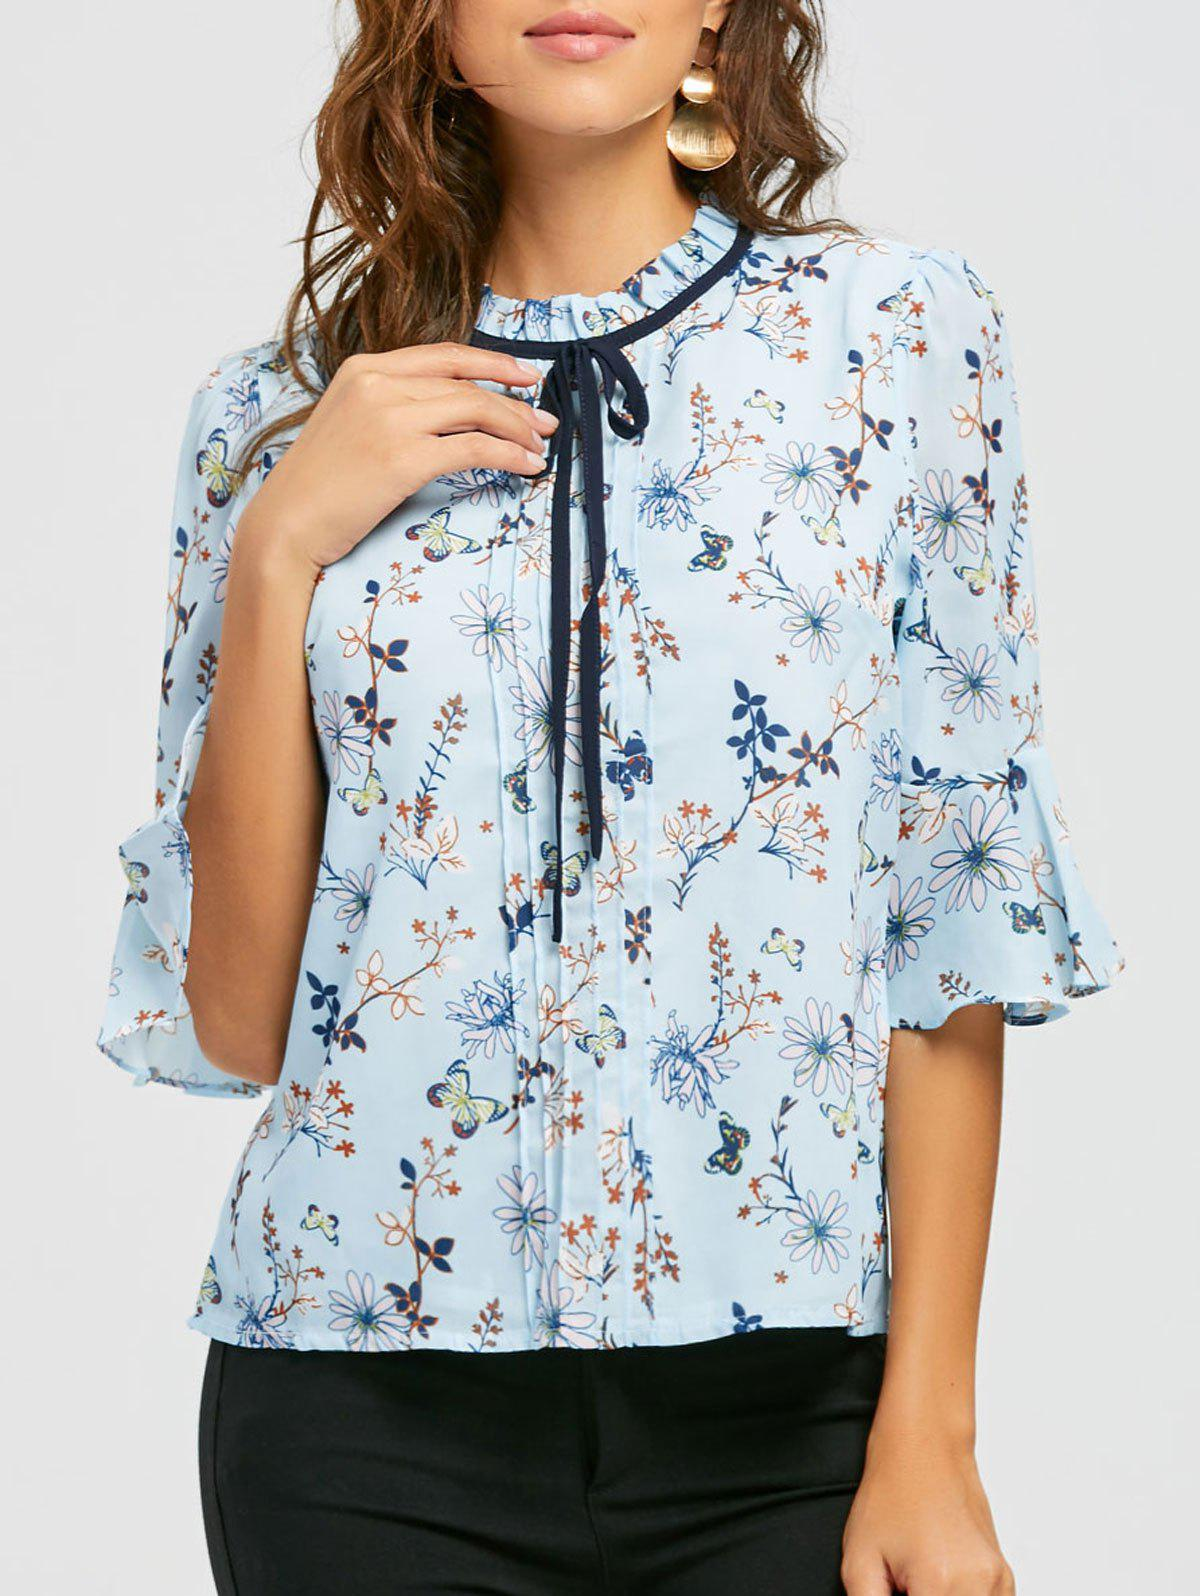 Ruffle Neck Floral Blouse - BLUE L